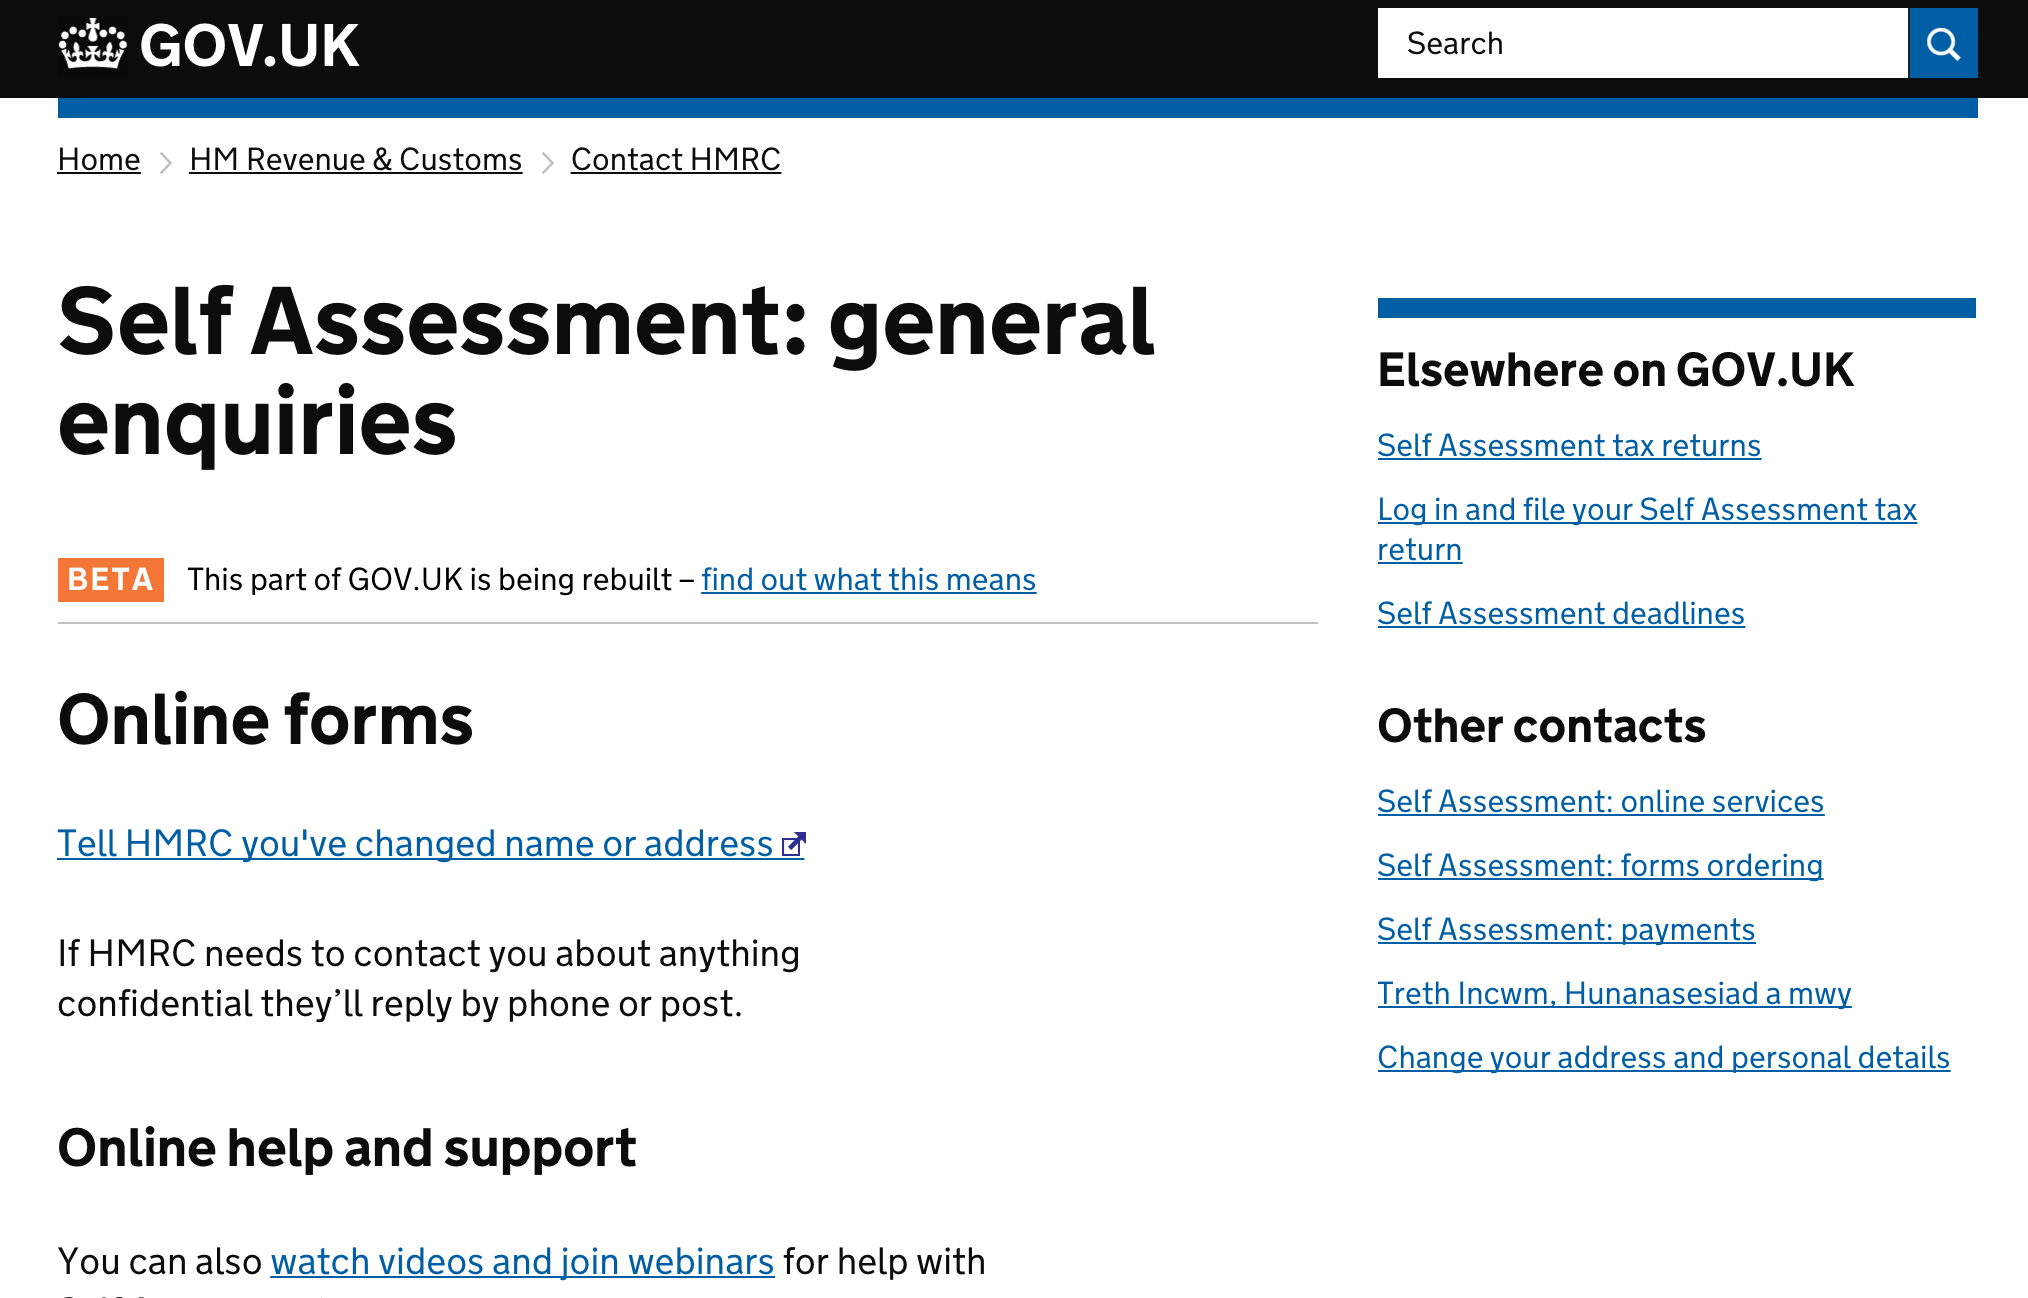 A screenshot of the Gov.UK site Self Assessment page.